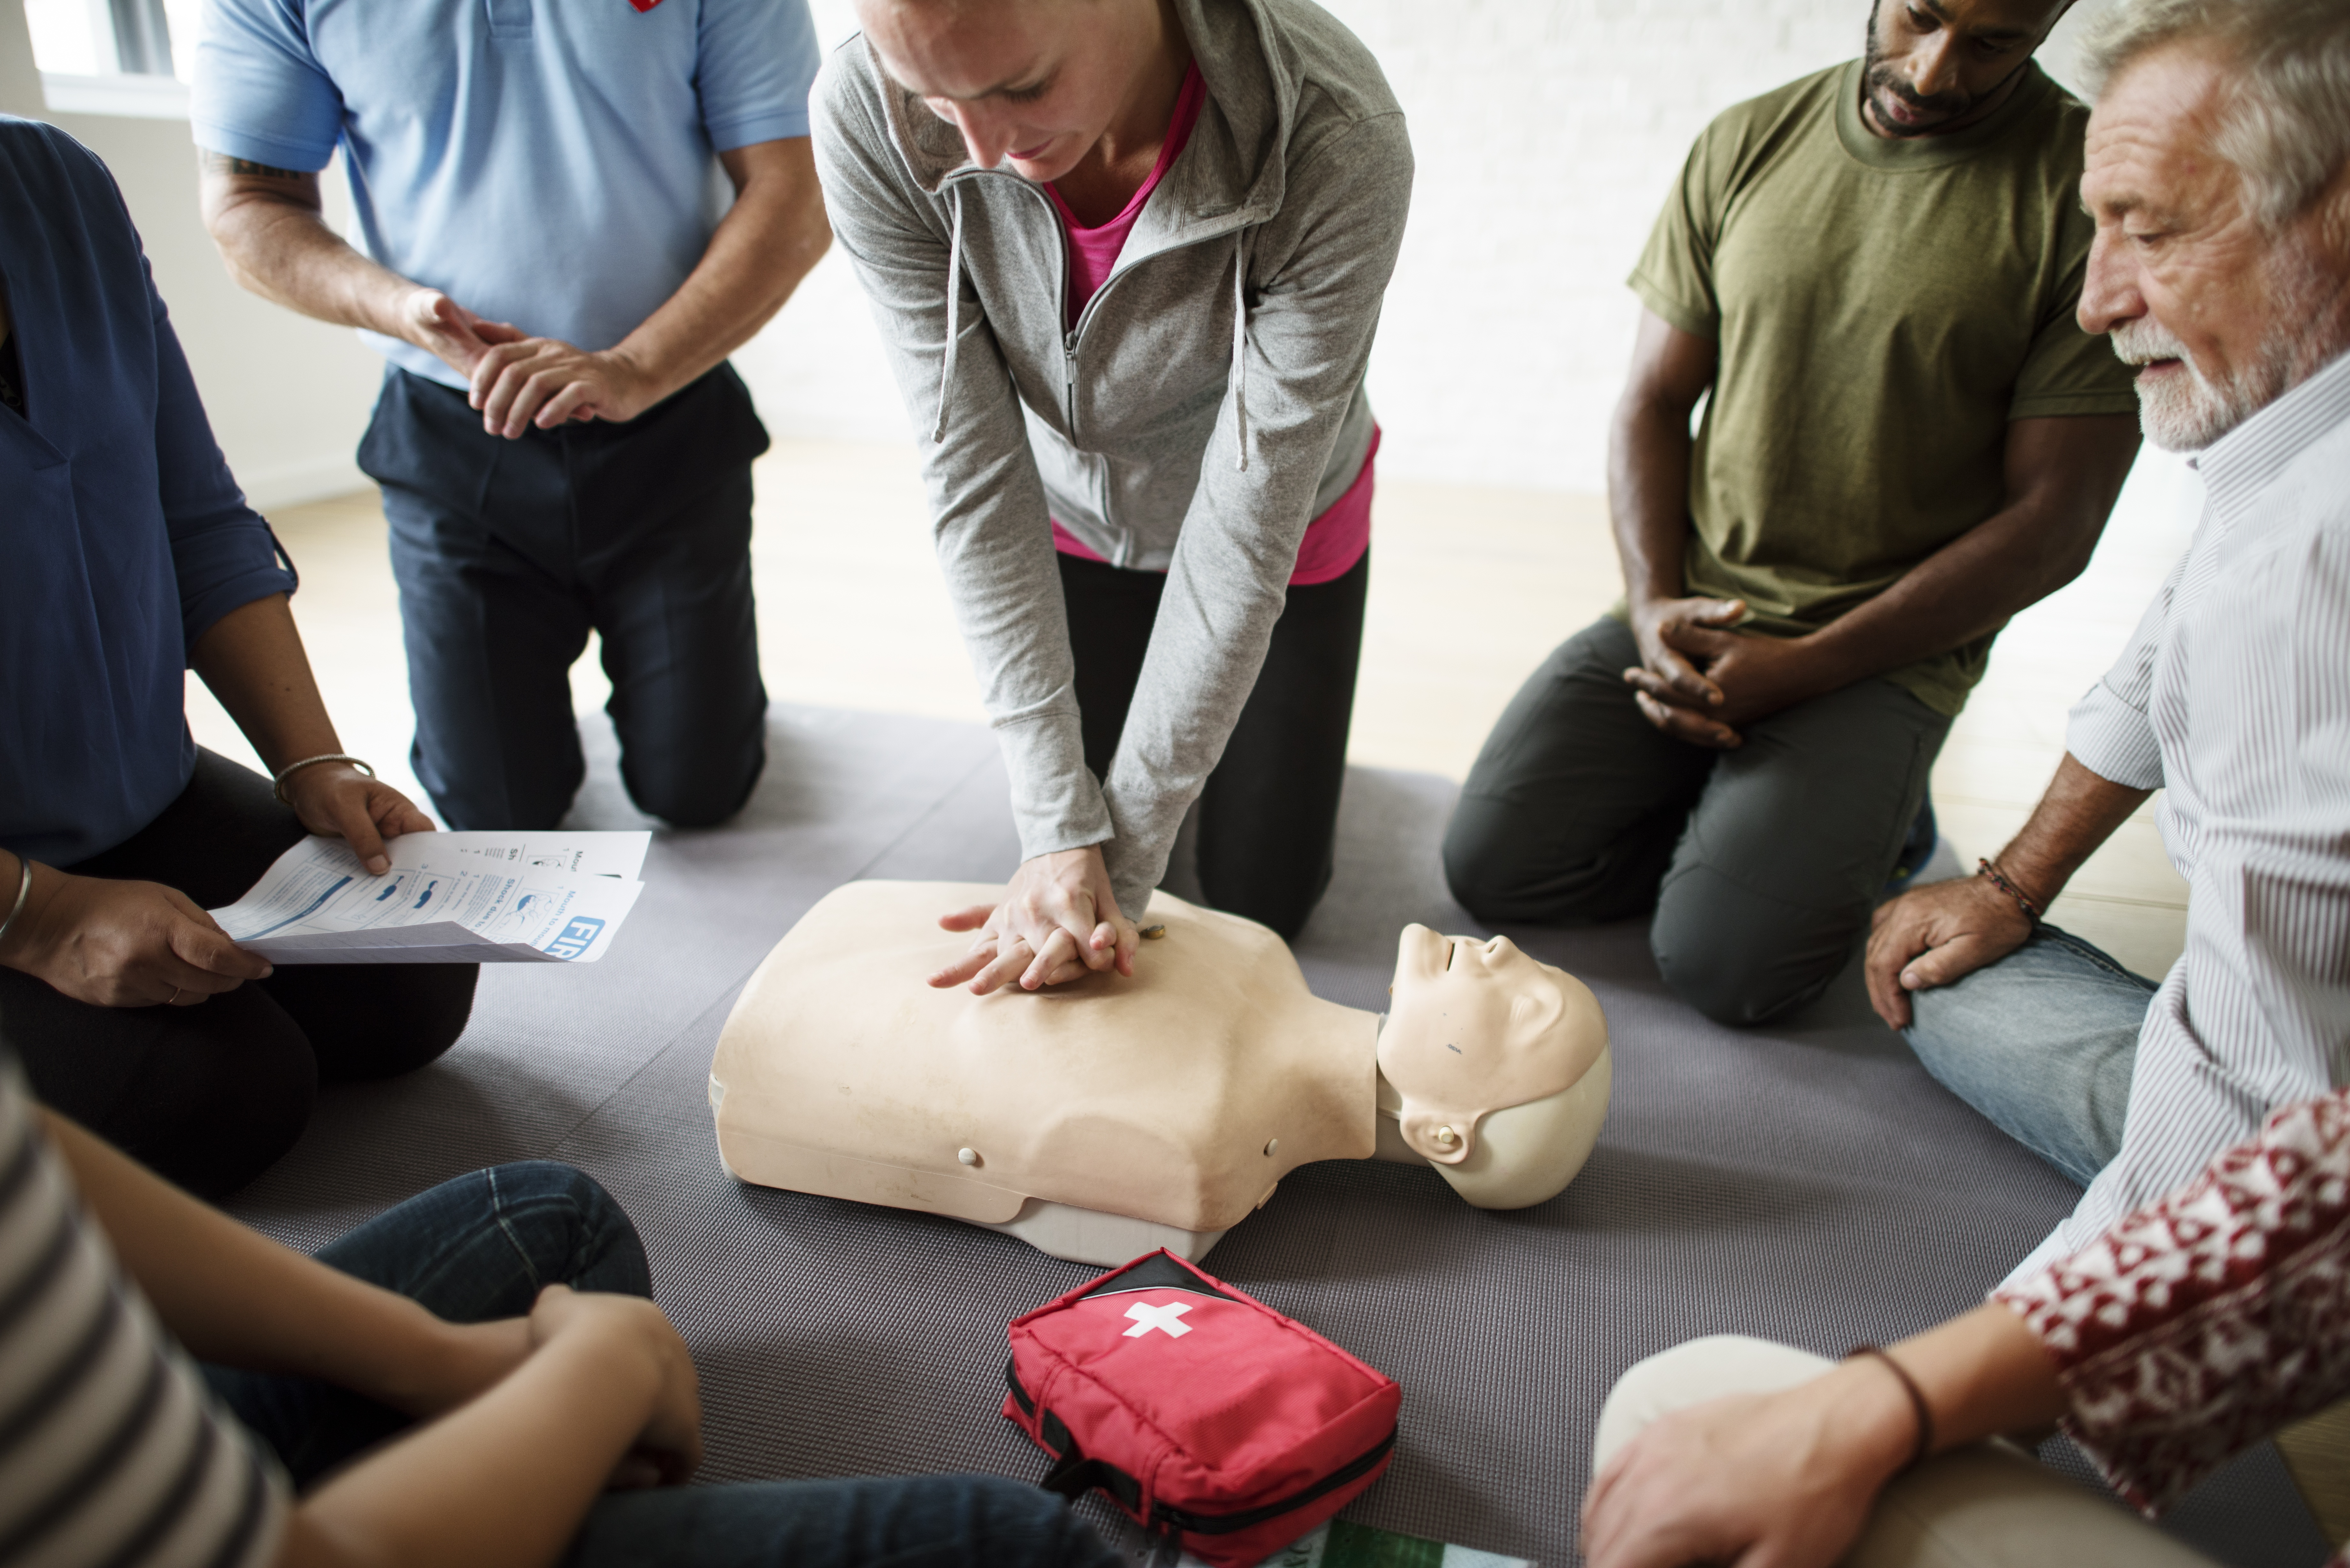 CPR Training and AEDs Can Save Lives in the Gym